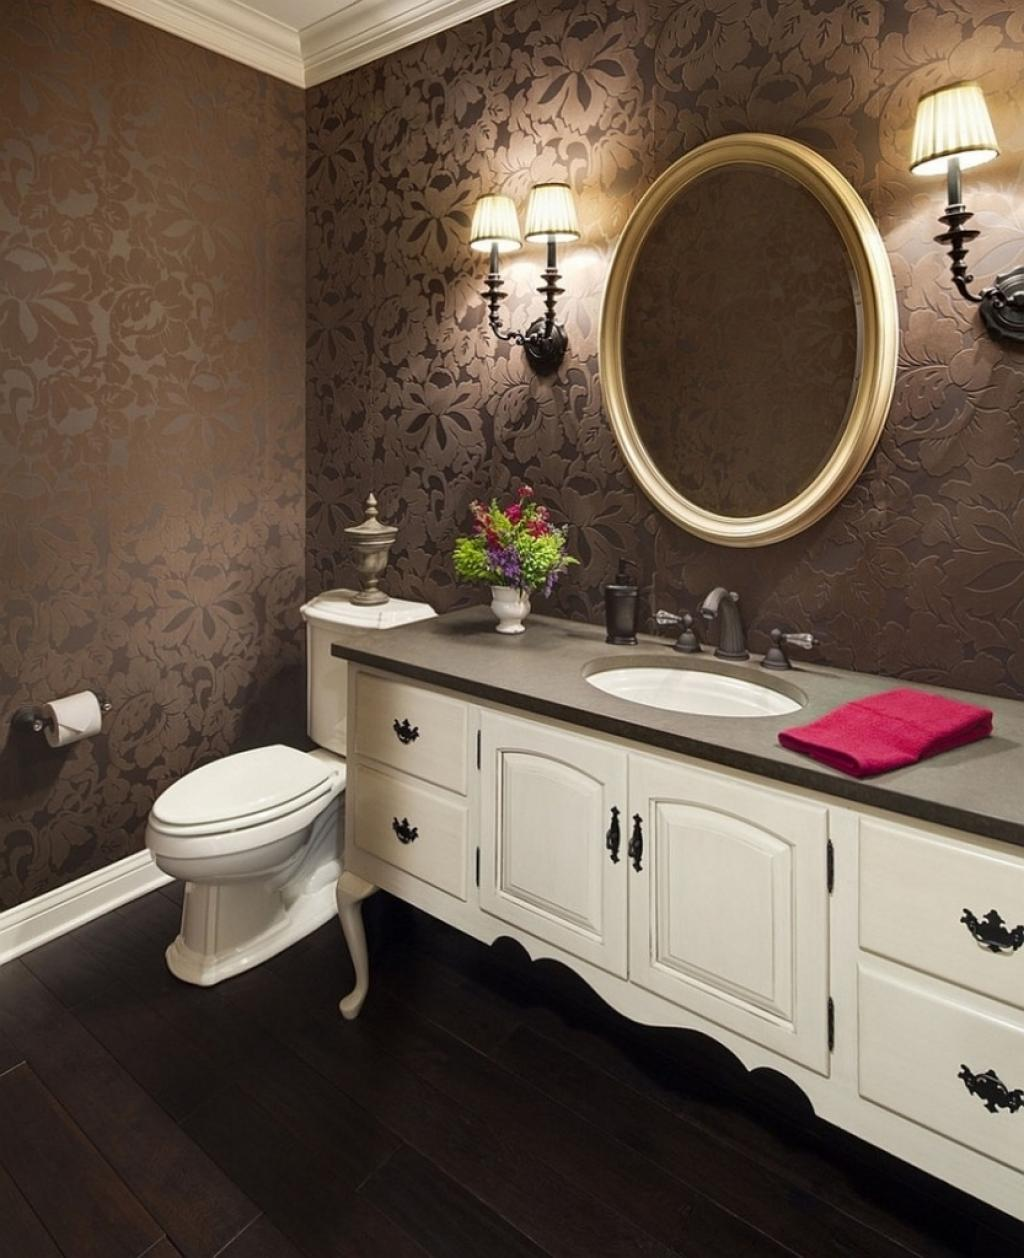 wallpaper ideas for small bathroom floral royal bathroom wallpaper ideas on small white 26178